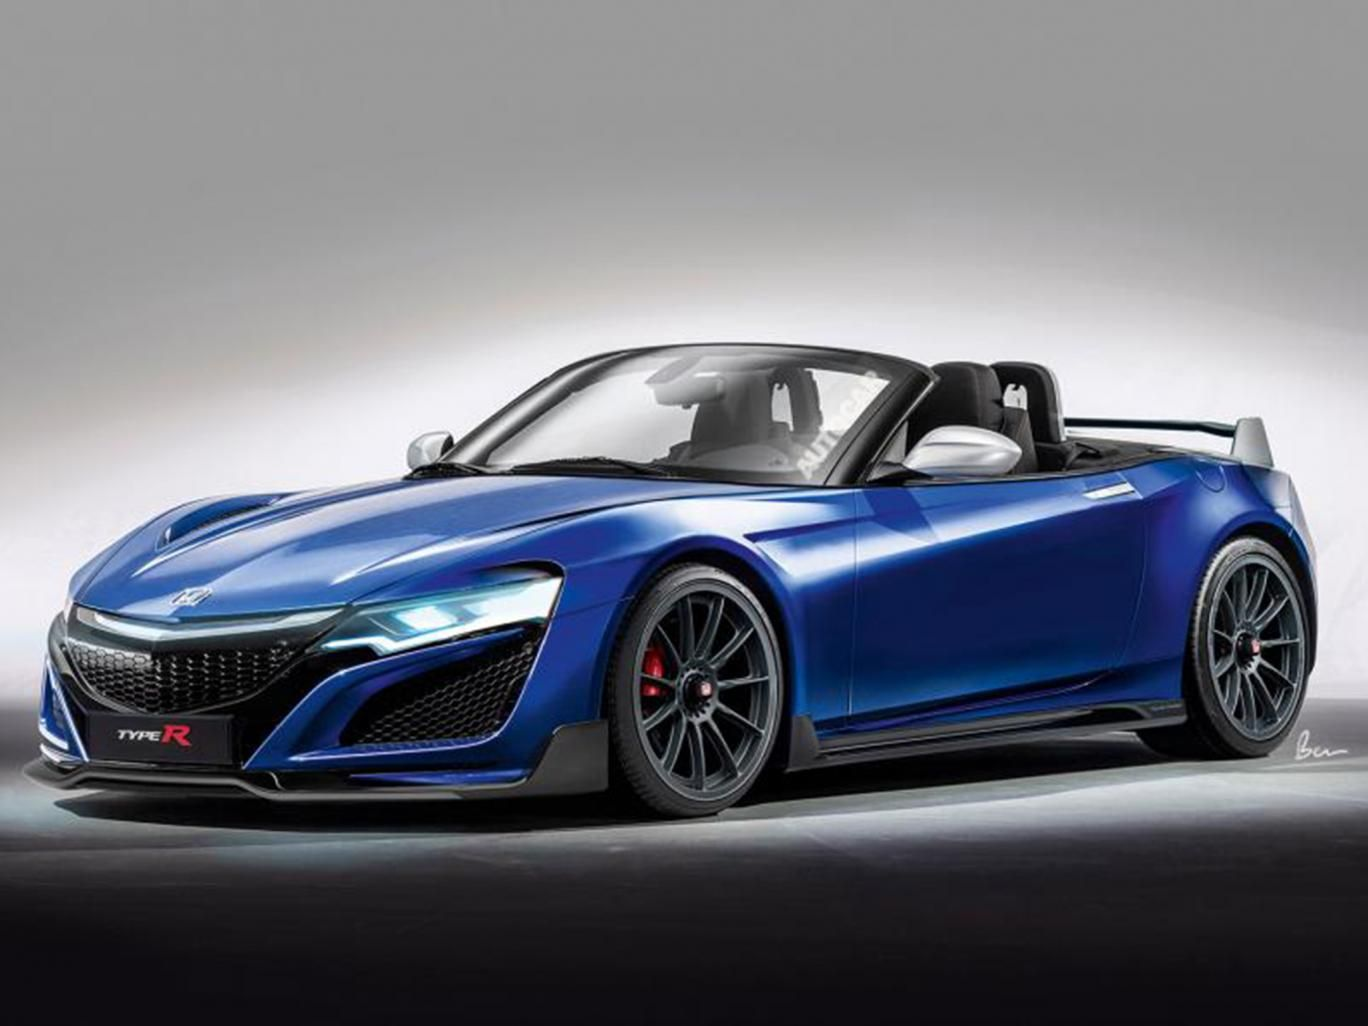 2020 Honda S2000 Rumors Specs Price And Release Date >> Honda Re Enters Sports Car Market With New S2000 Honda